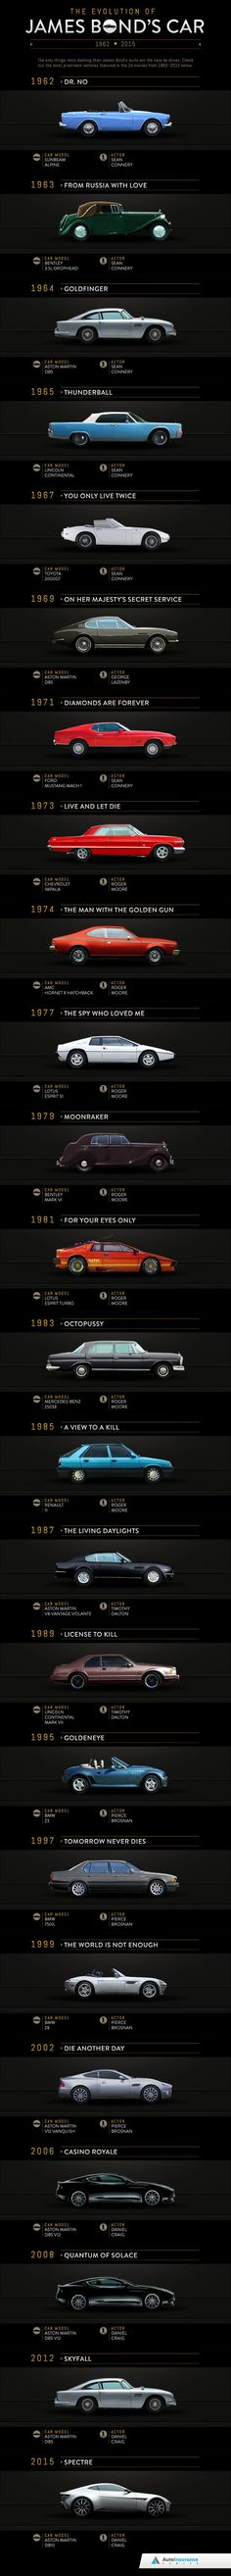 The Evolution of James Bond's Car!